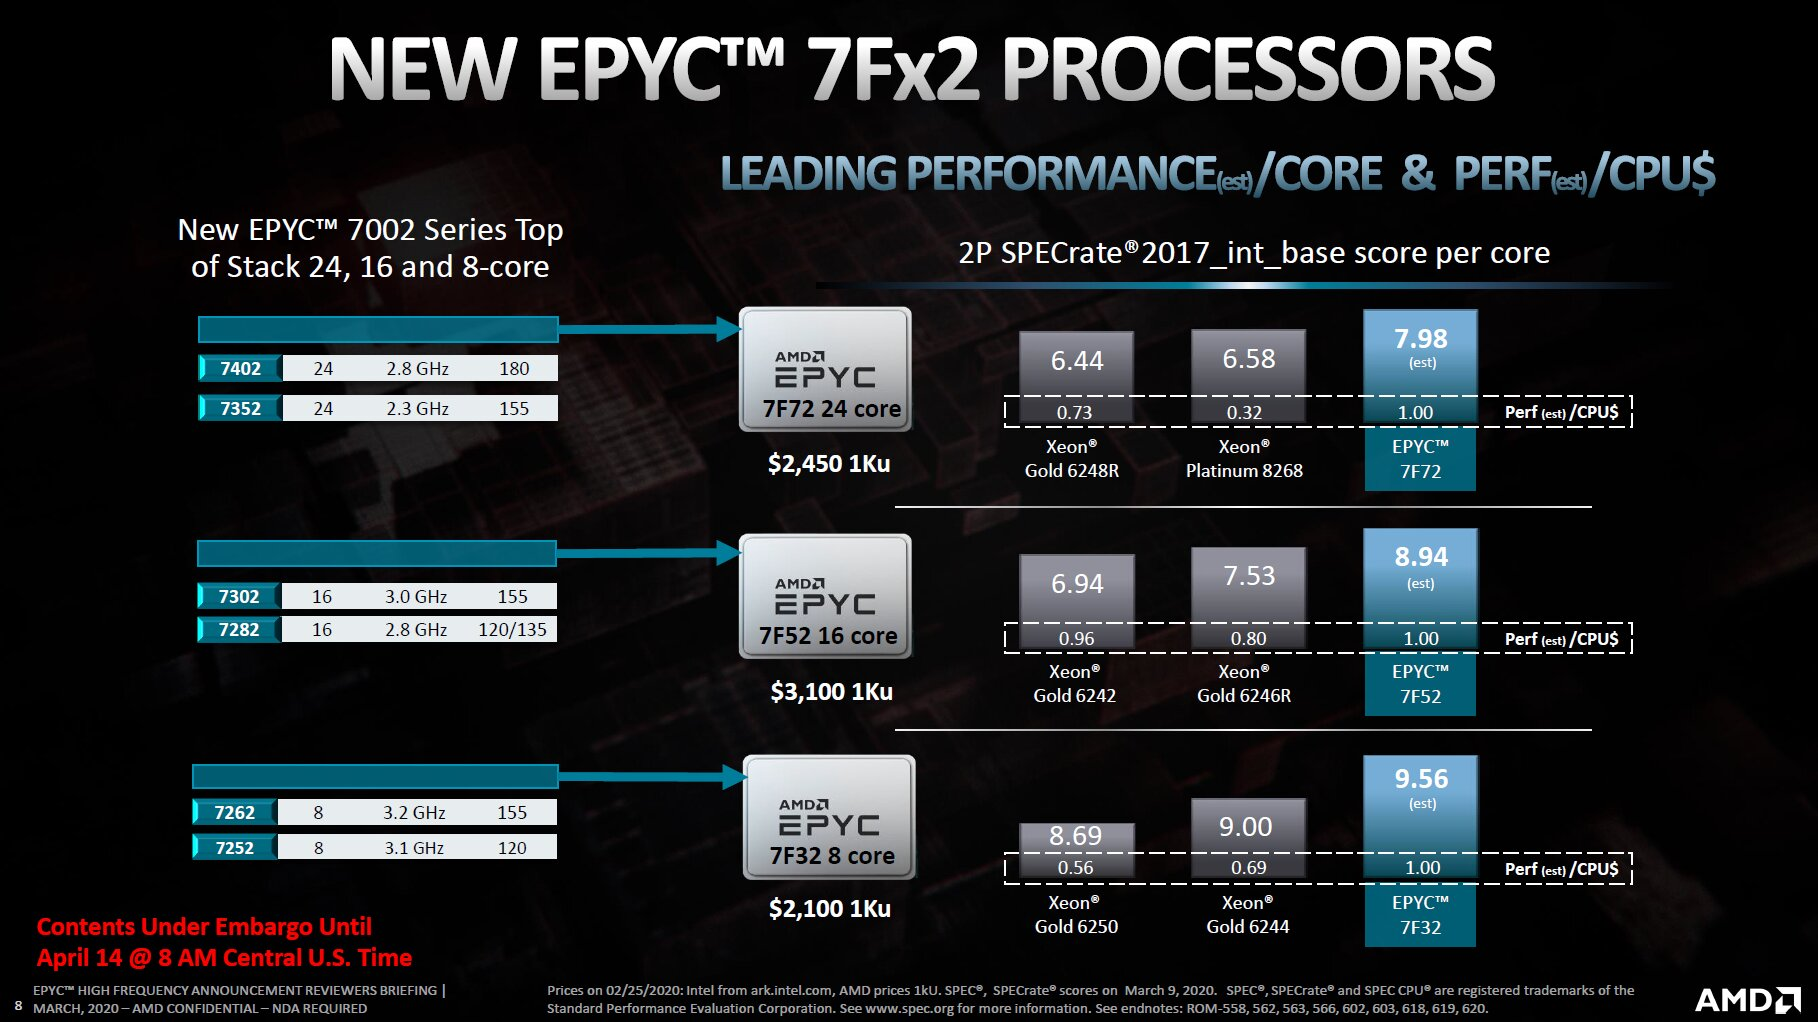 AMD Epyc vs. Intel Xeon